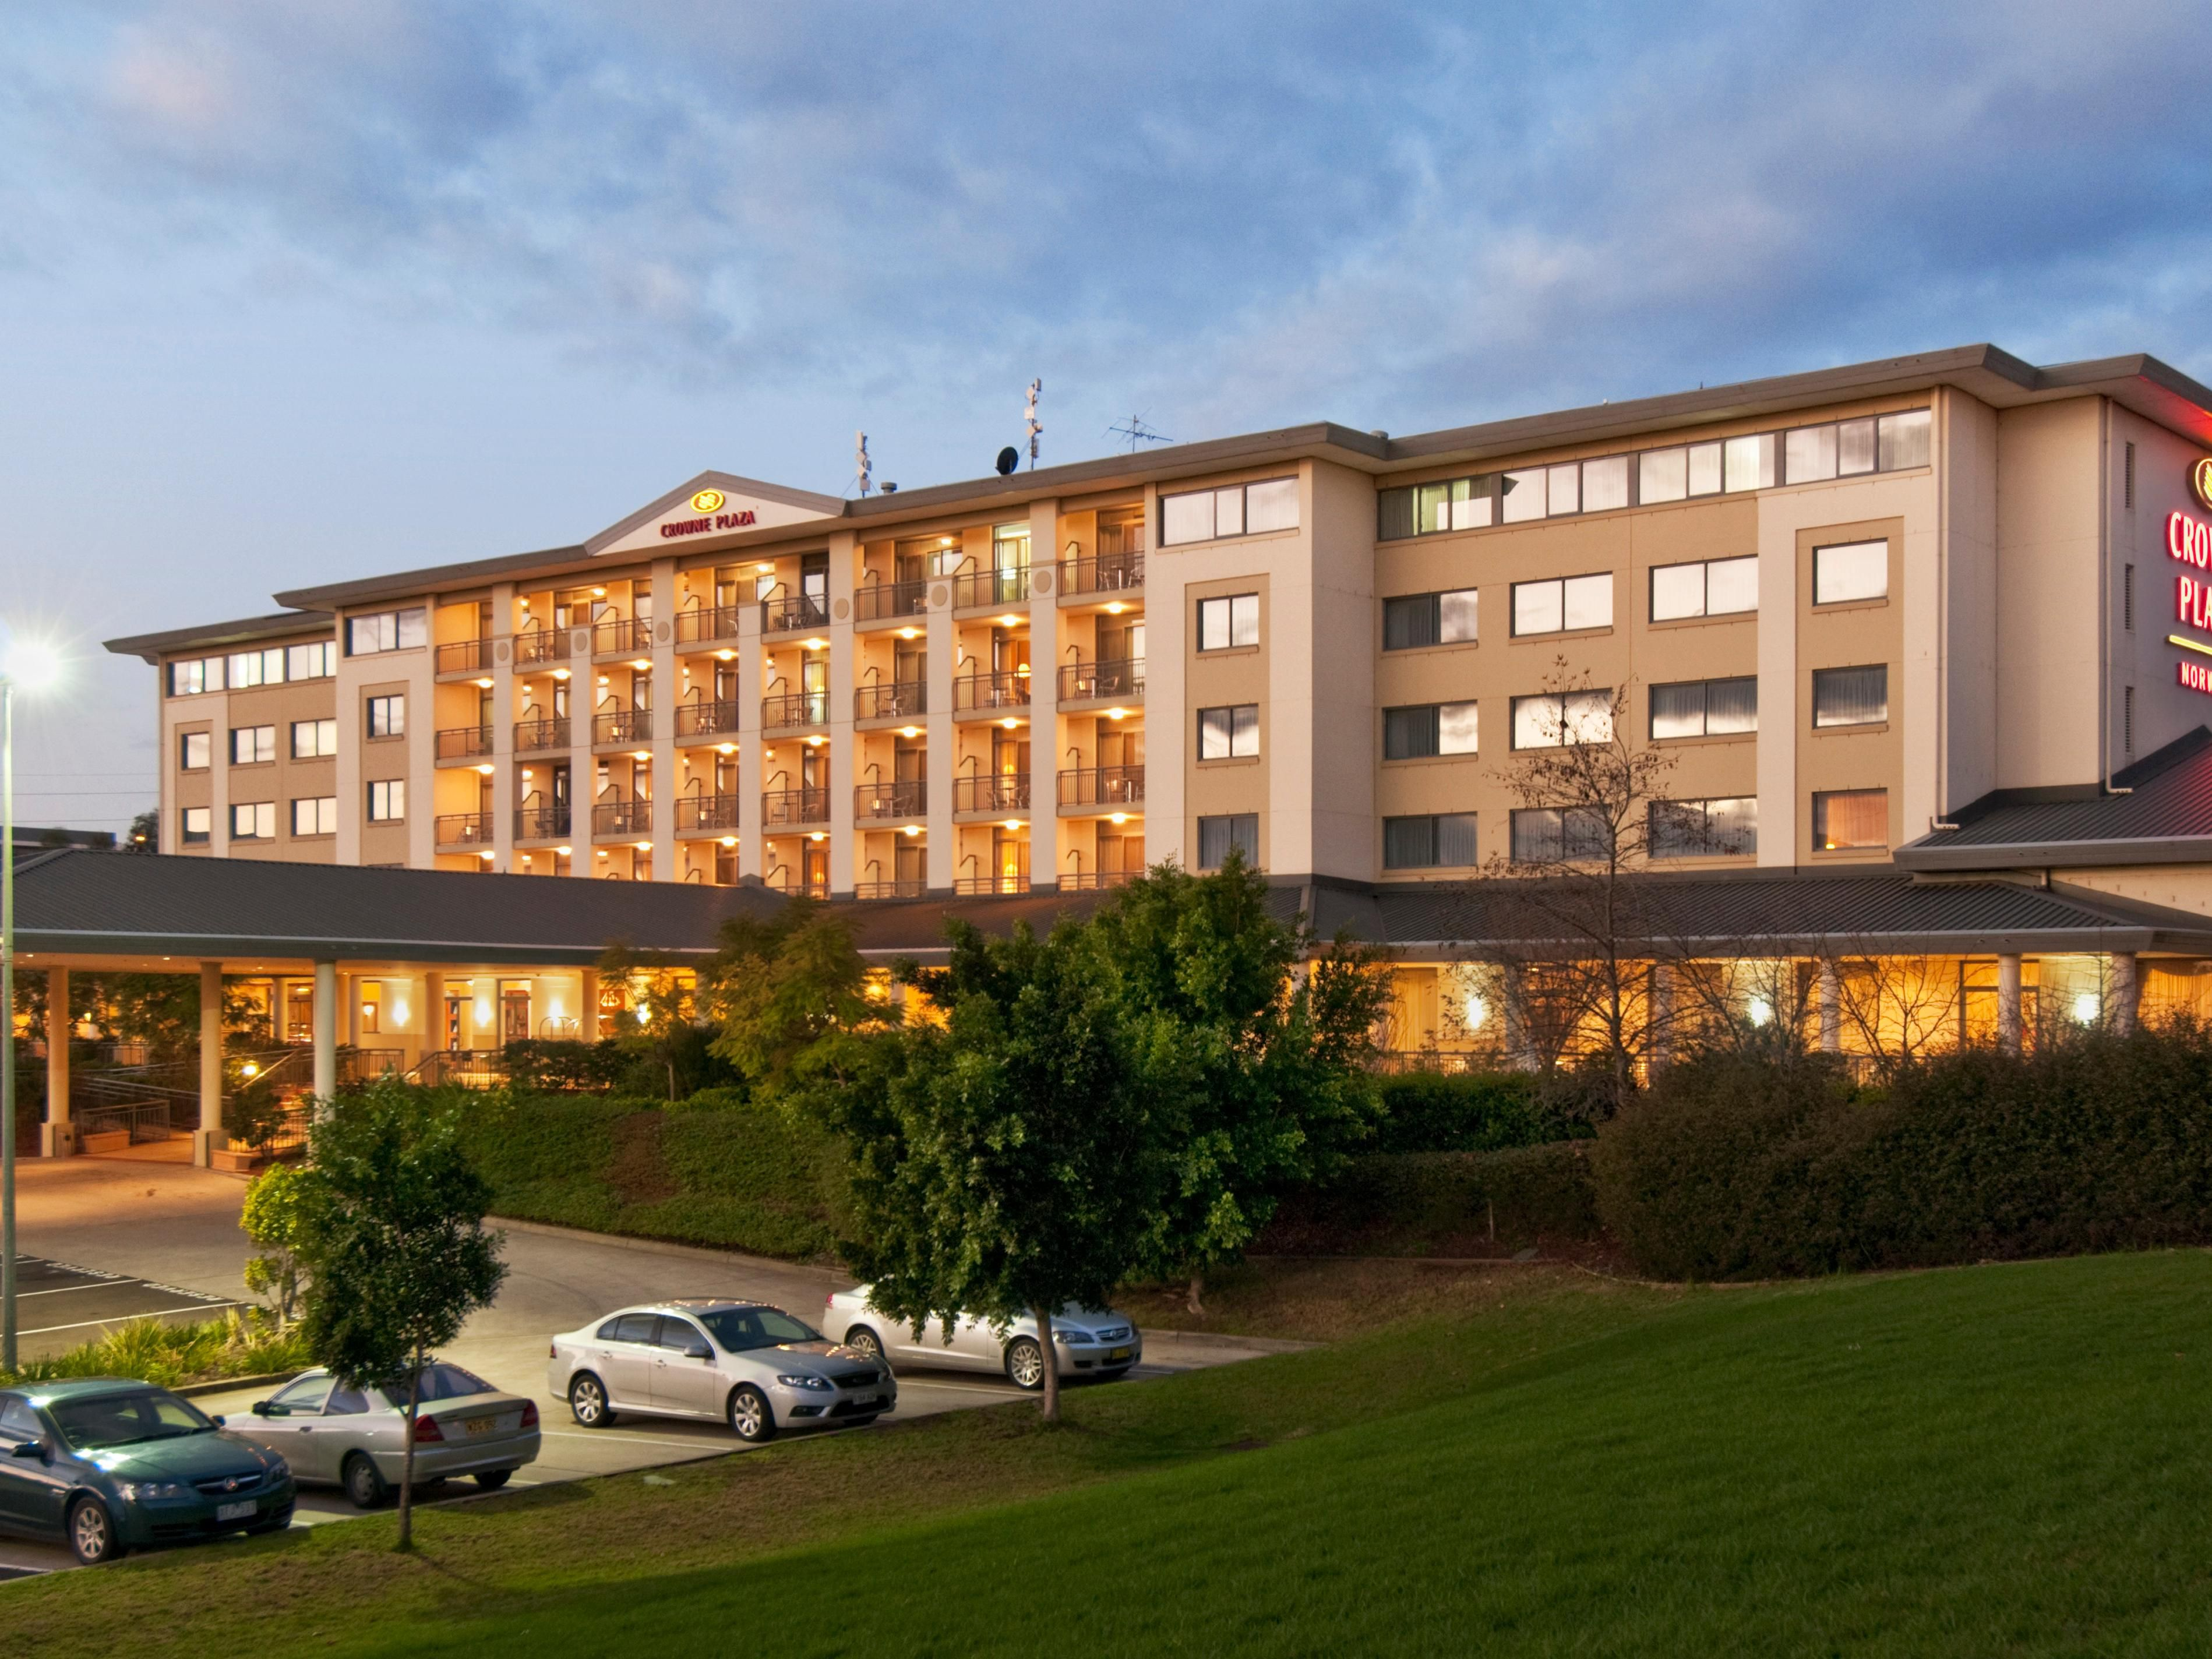 Crowne Plaza Norwest Evening Exterior